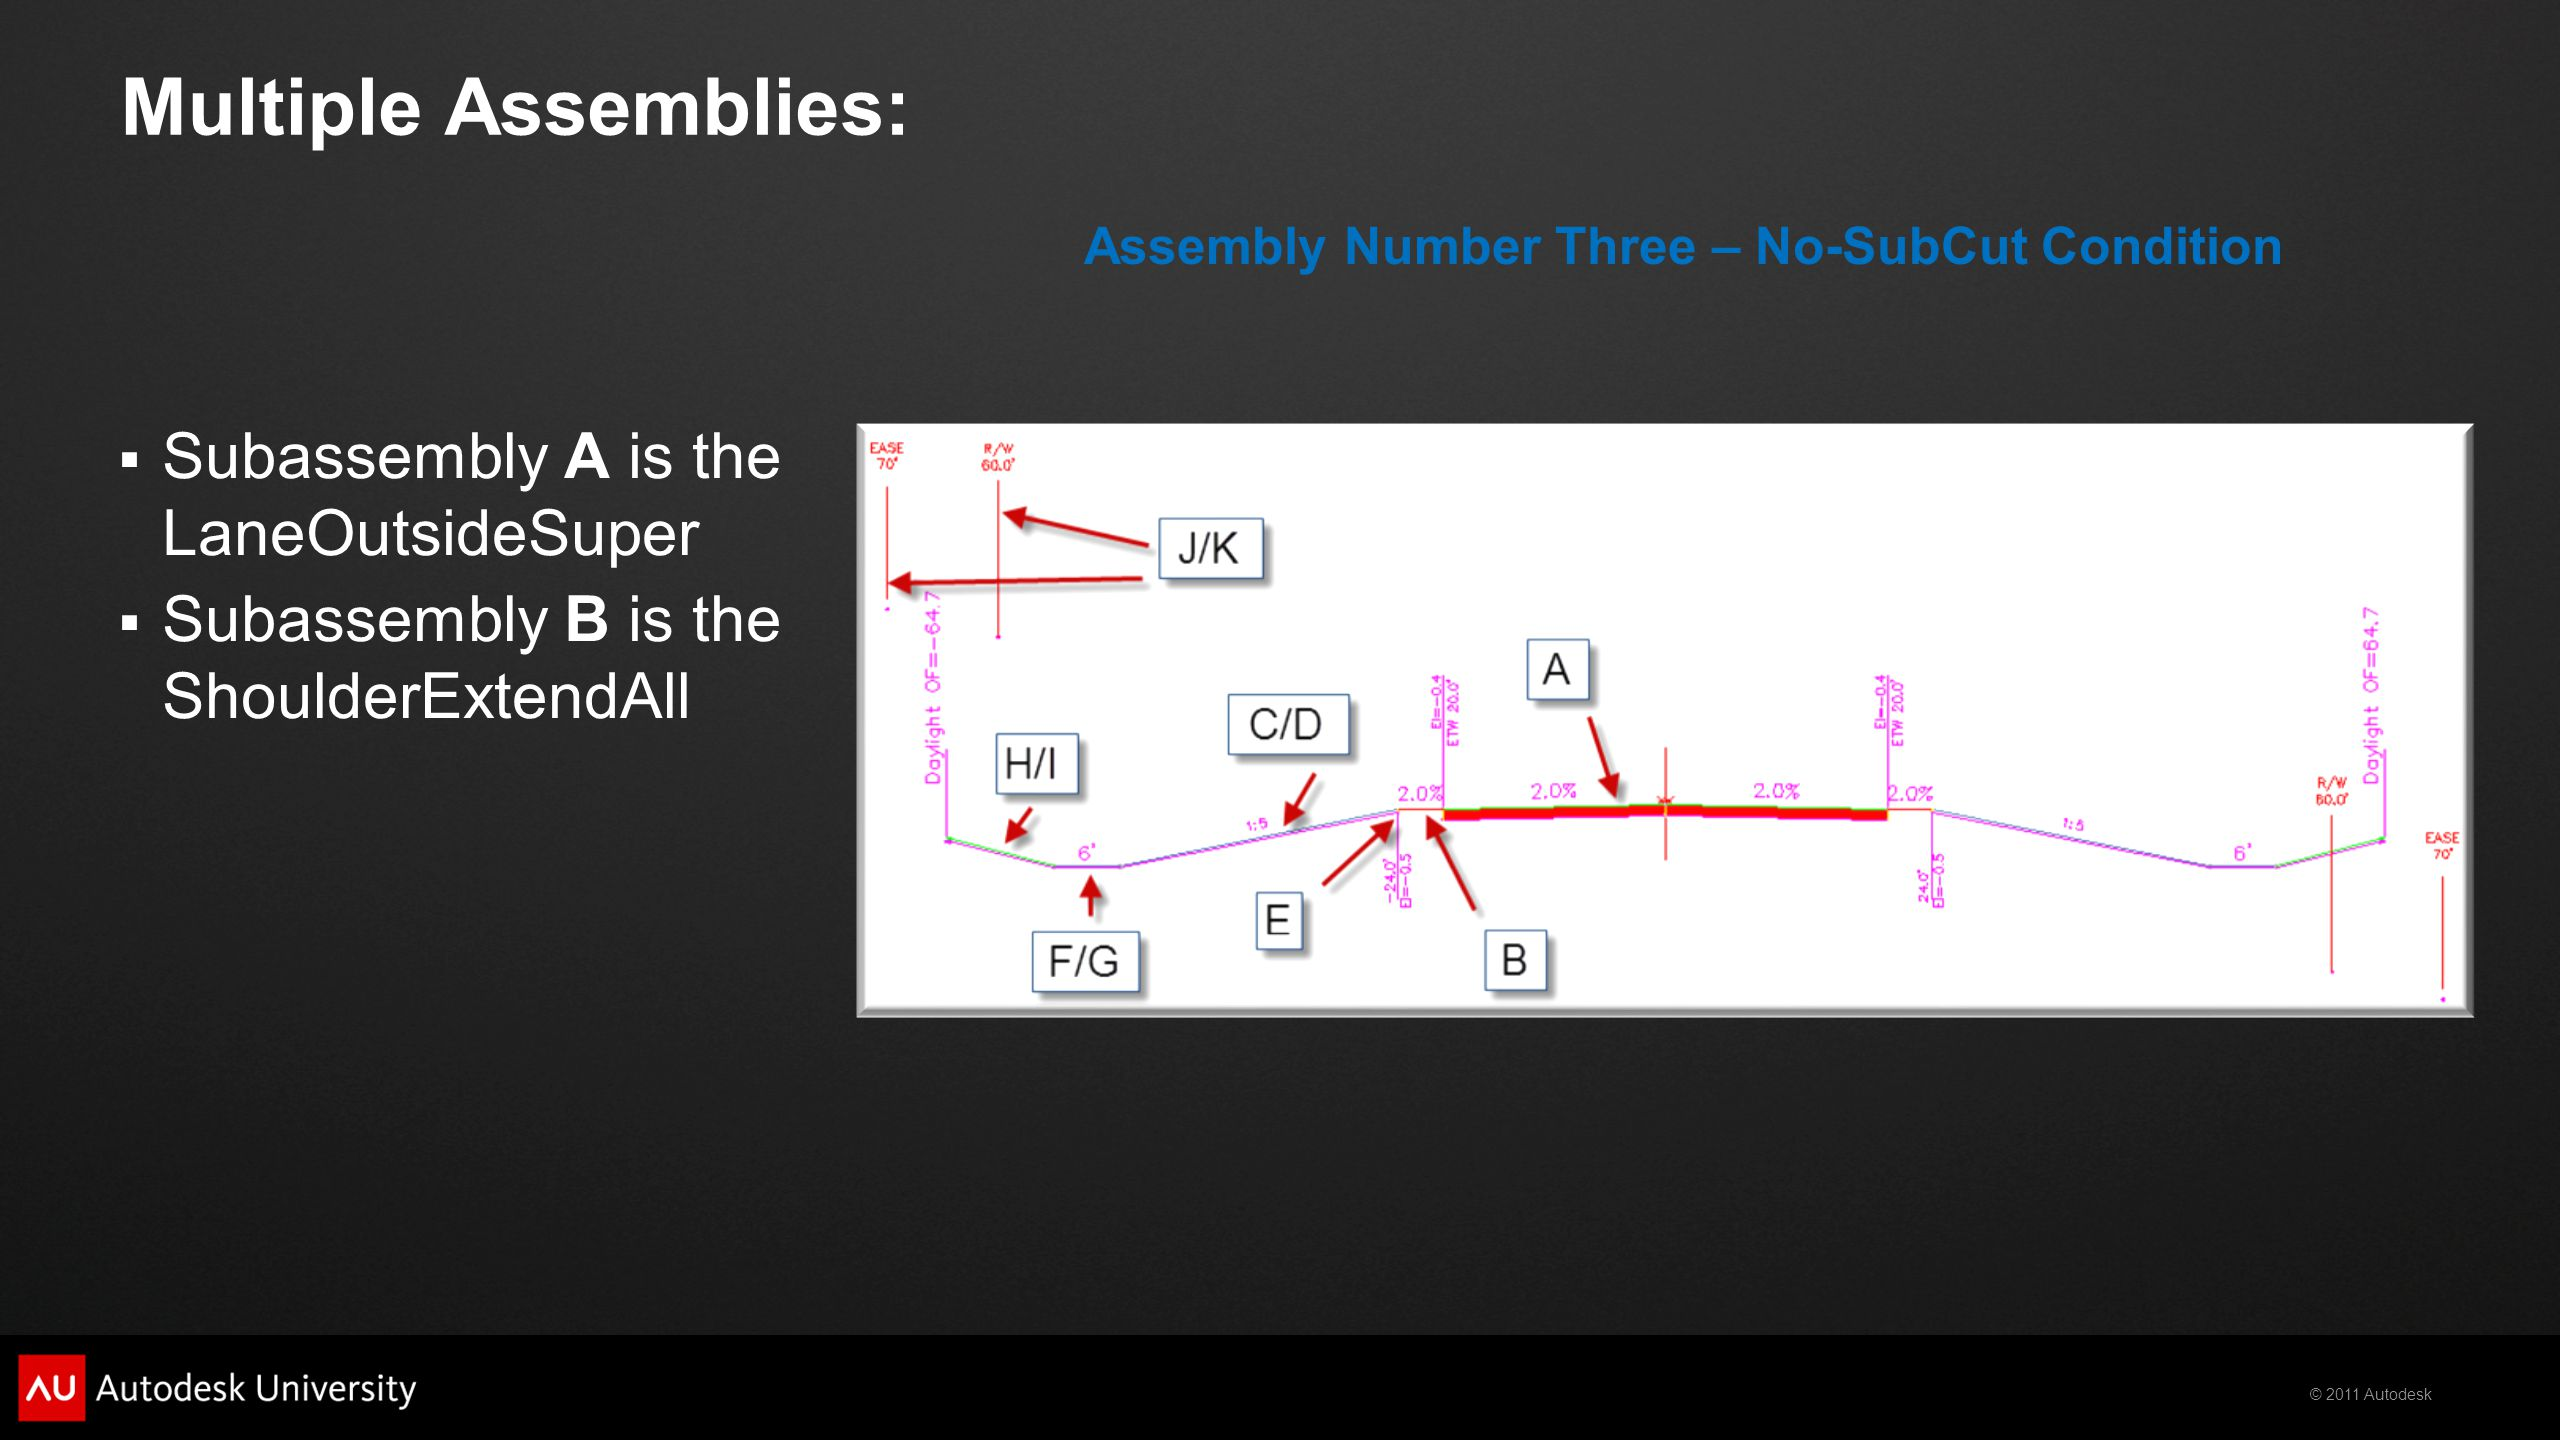 Assembly Number Three – No-SubCut Condition